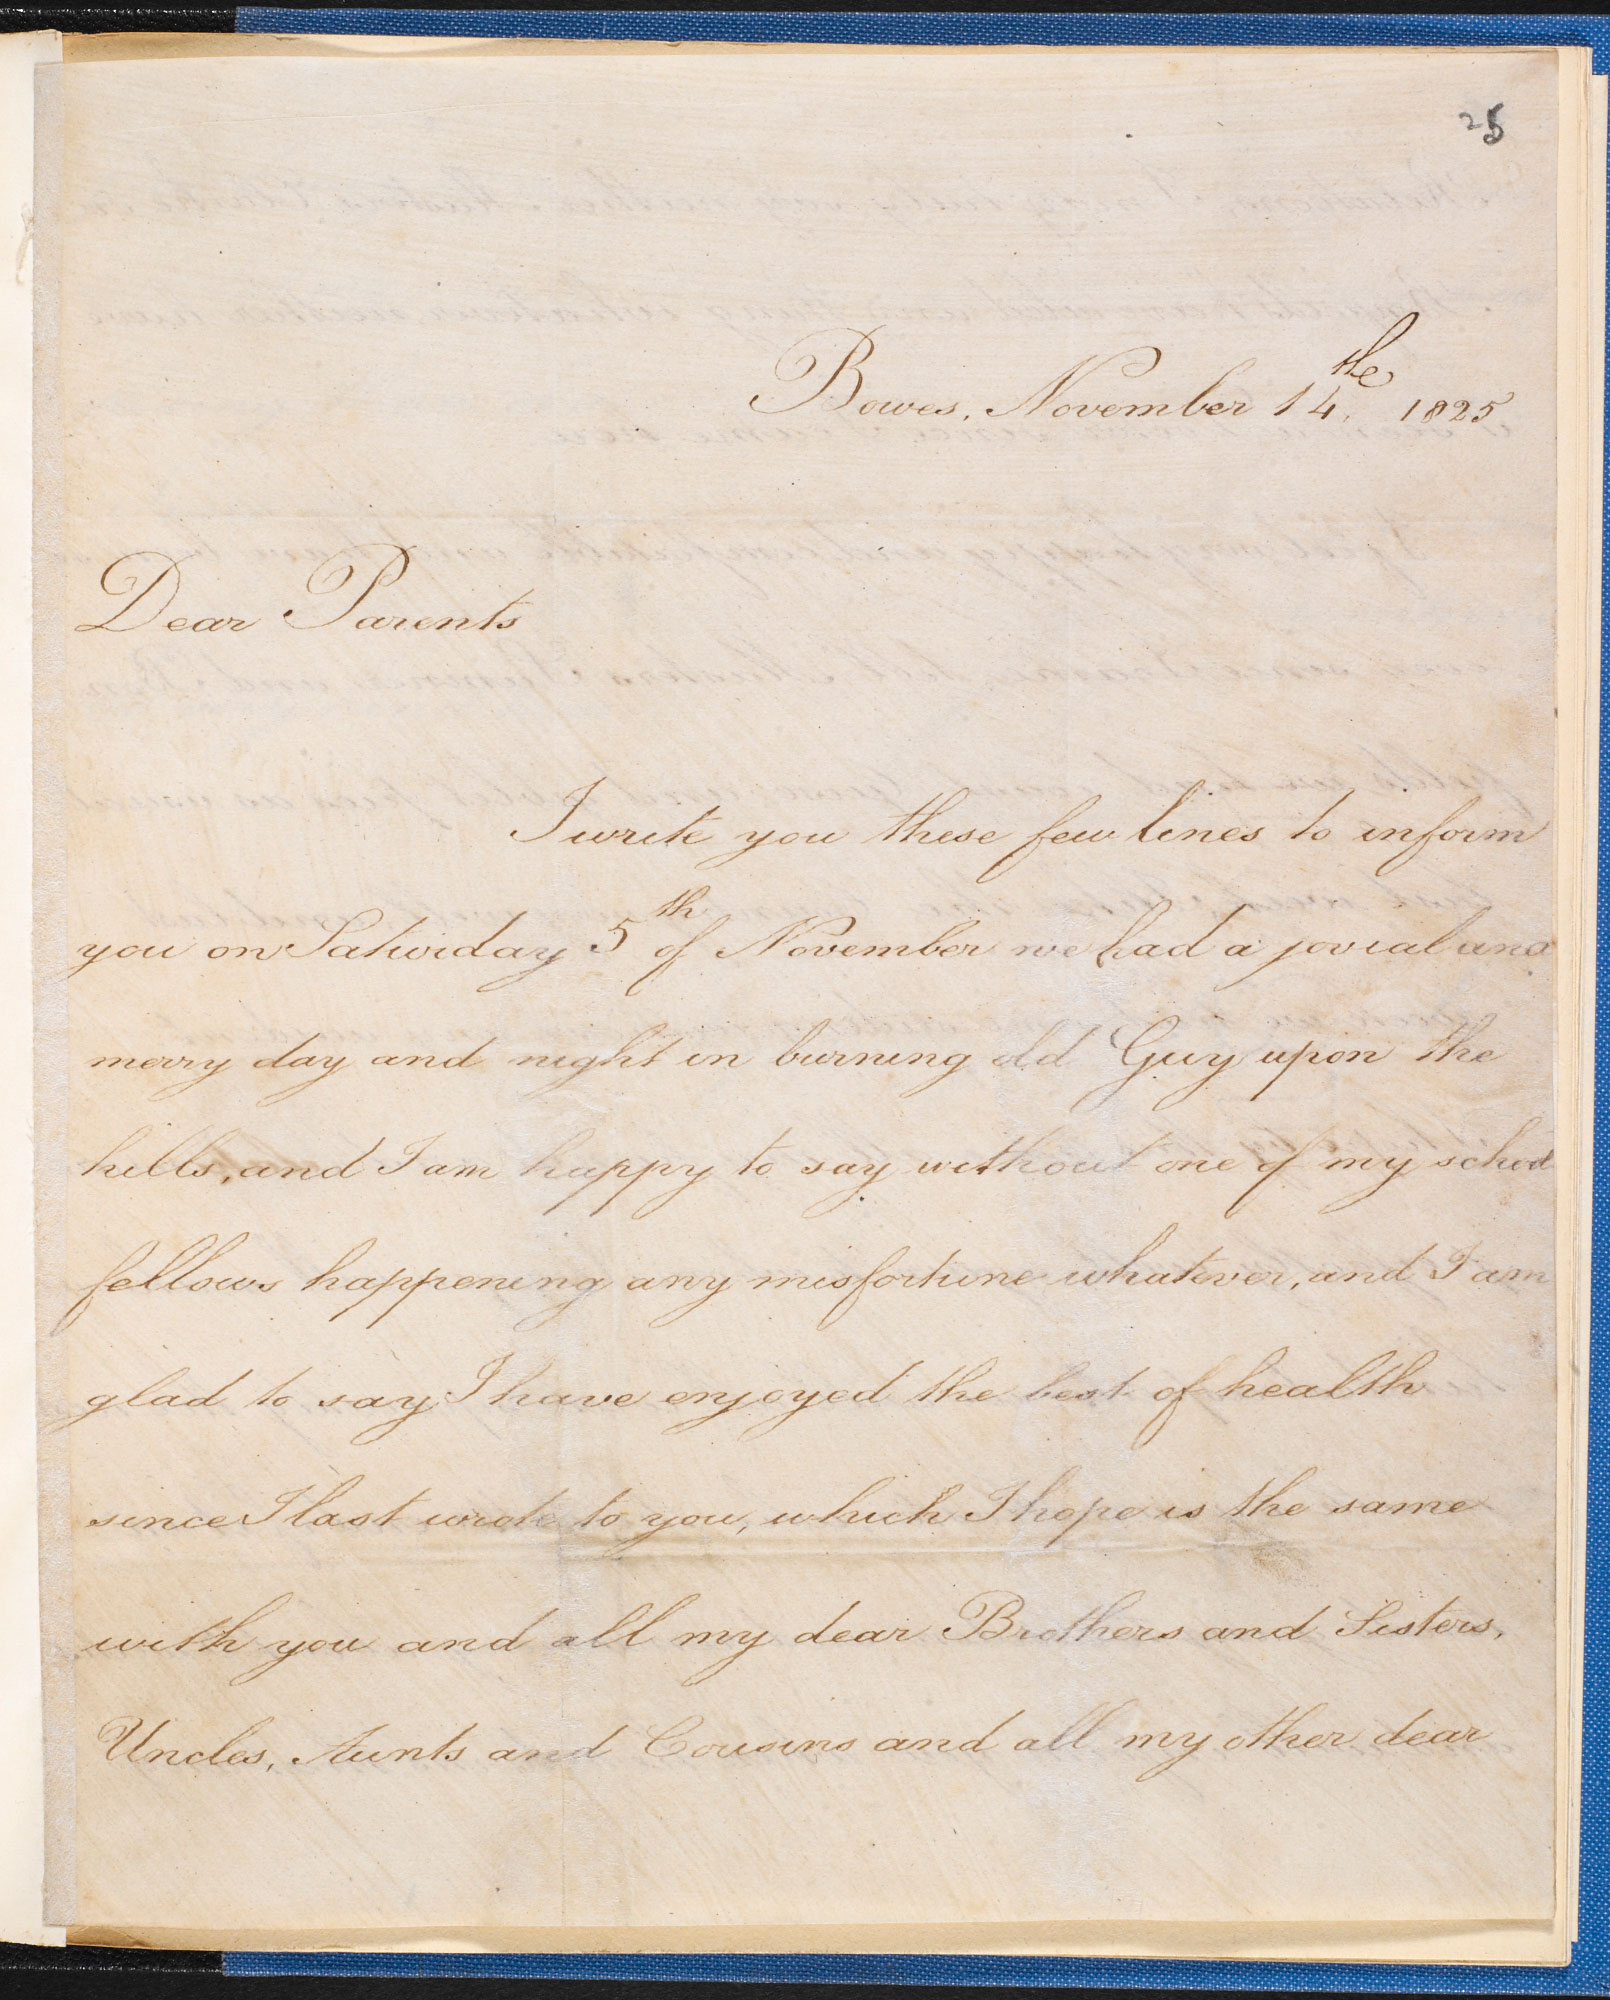 letter to his parents from george brooks a pupil of william shaw written in 1825 two years after shaws trial it is accompanied by another letter from